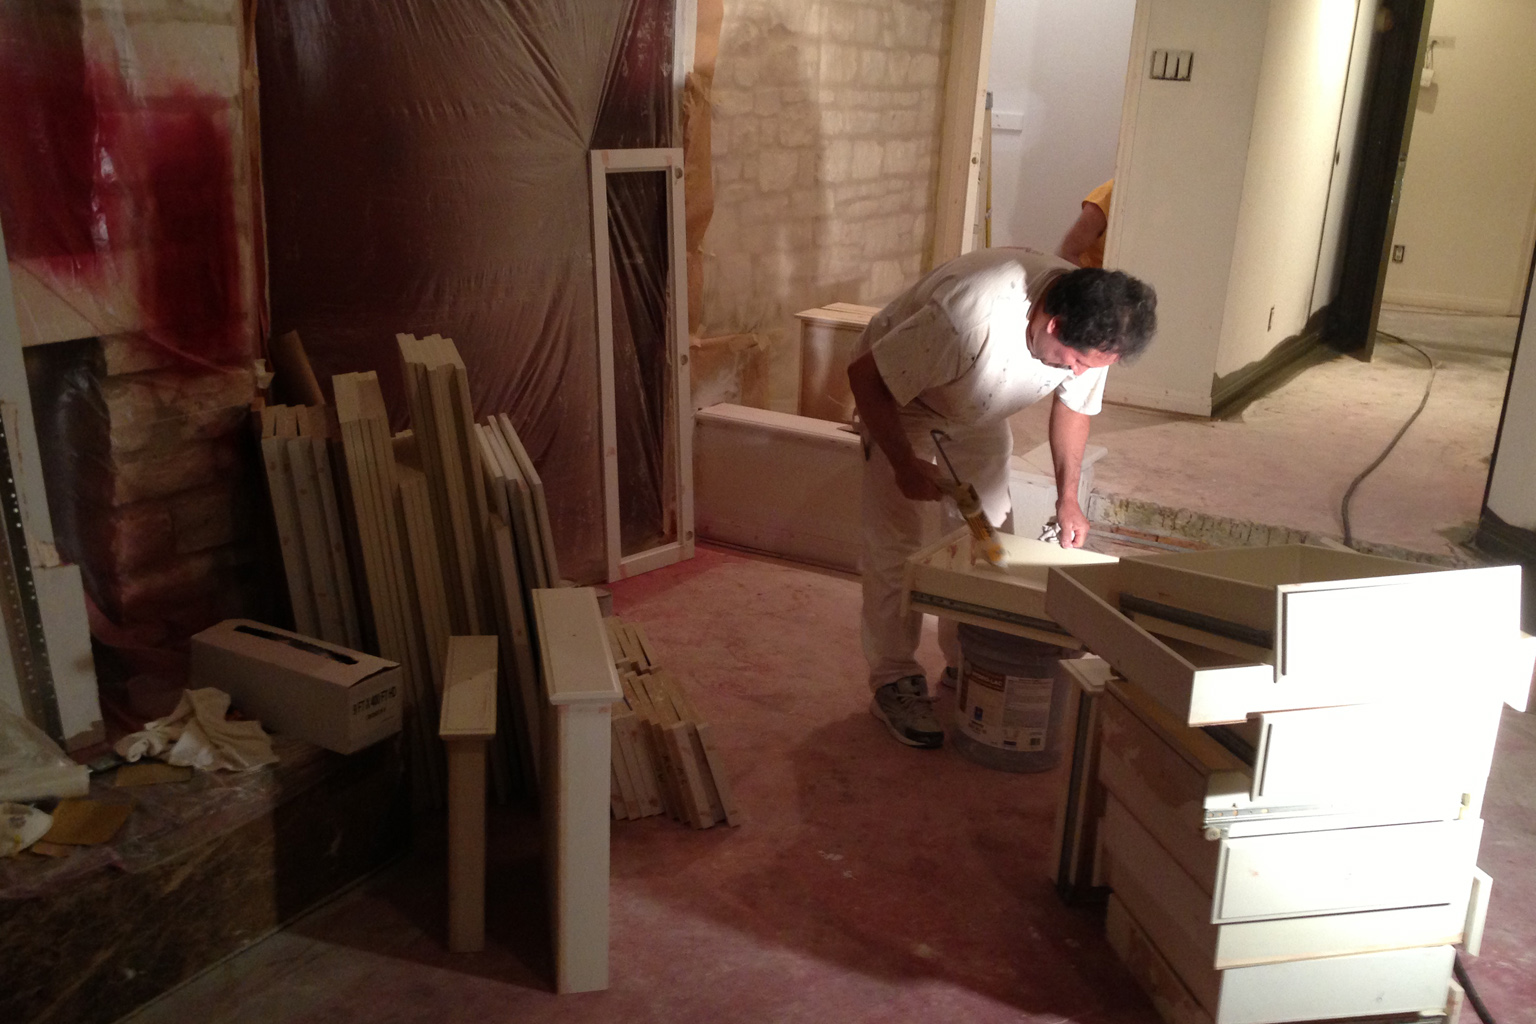 Each piece of old cabinetry is cleaned, sanded, primed, sanded, filled and caulked before any paint is actually applied. The painting takes very little time comparatively.